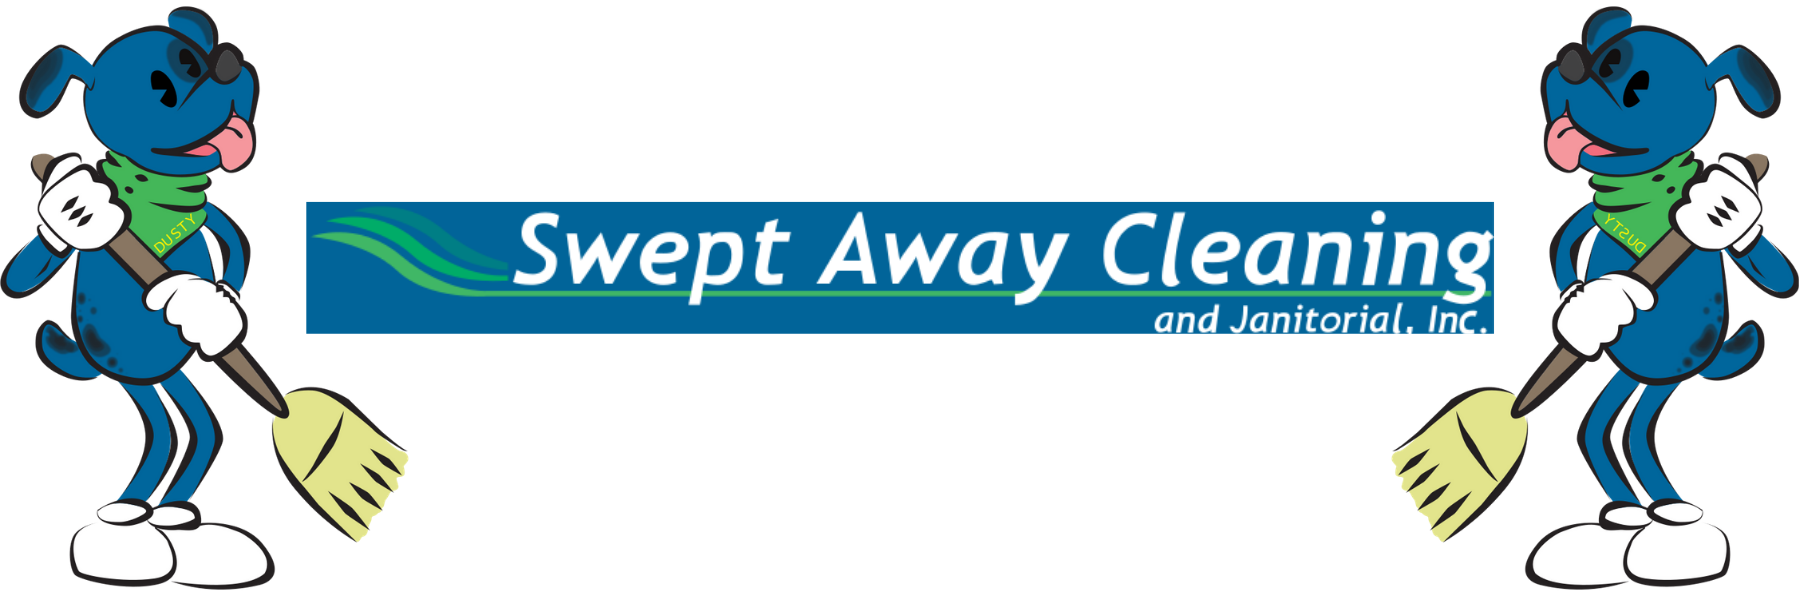 Swept Away Cleaning & Janitorial Inc